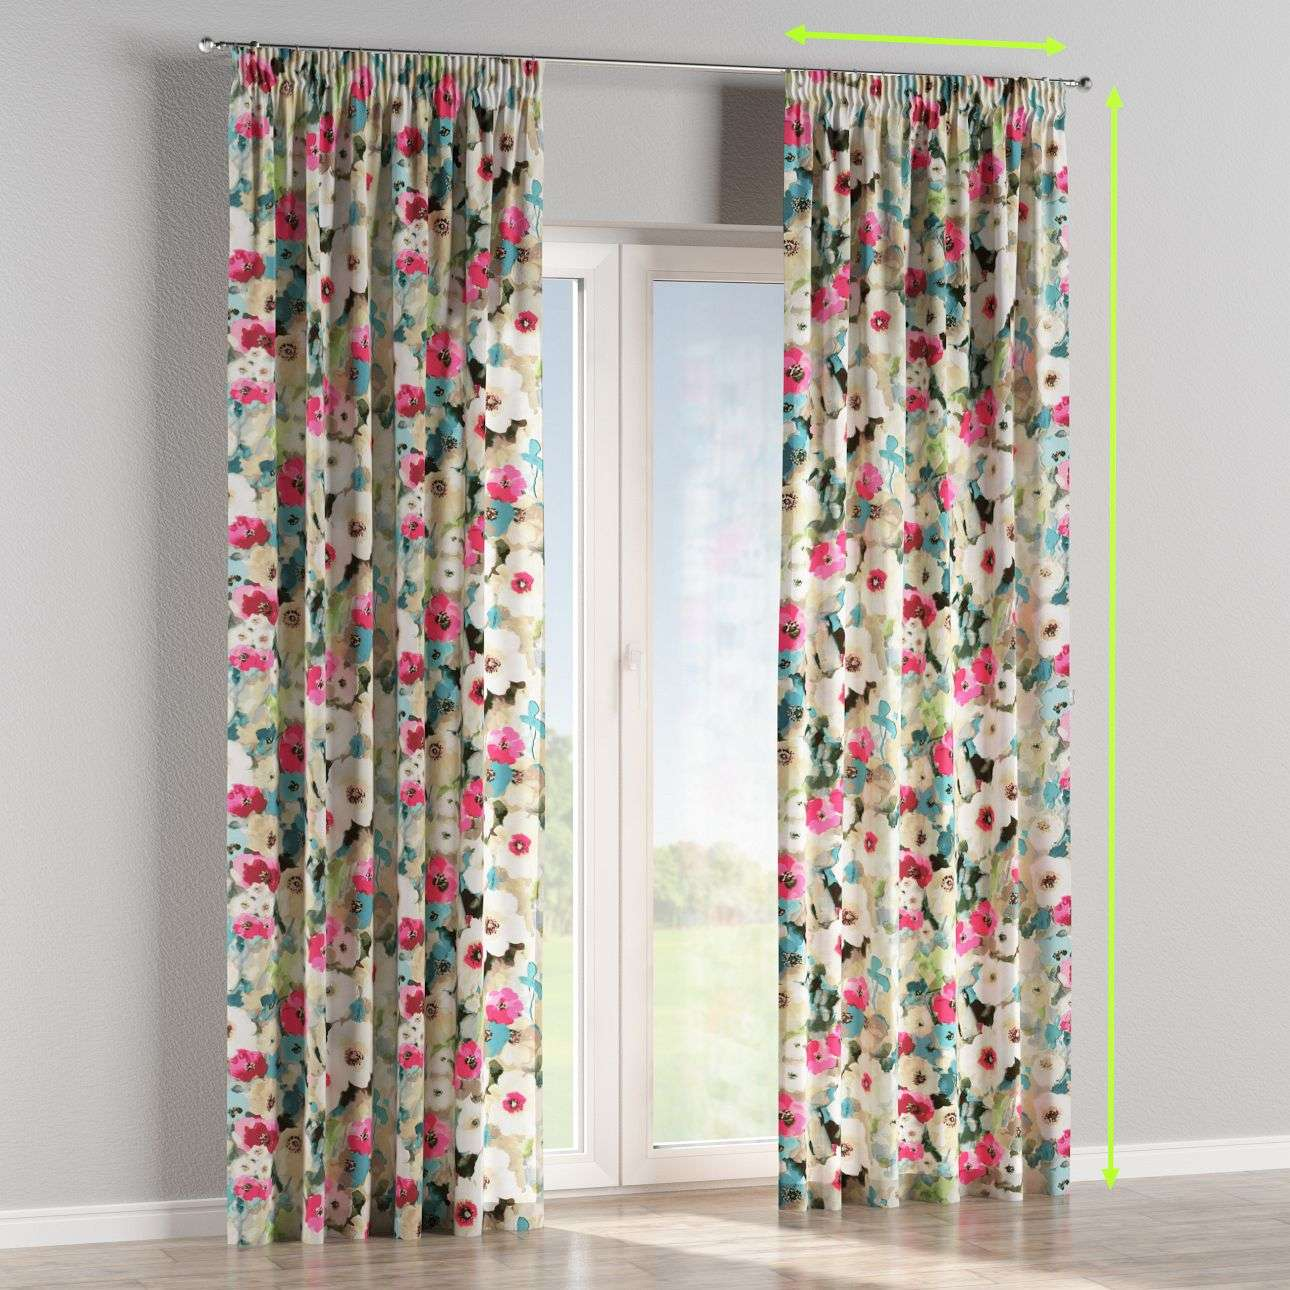 Pencil pleat lined curtains in collection Monet, fabric: 140-08